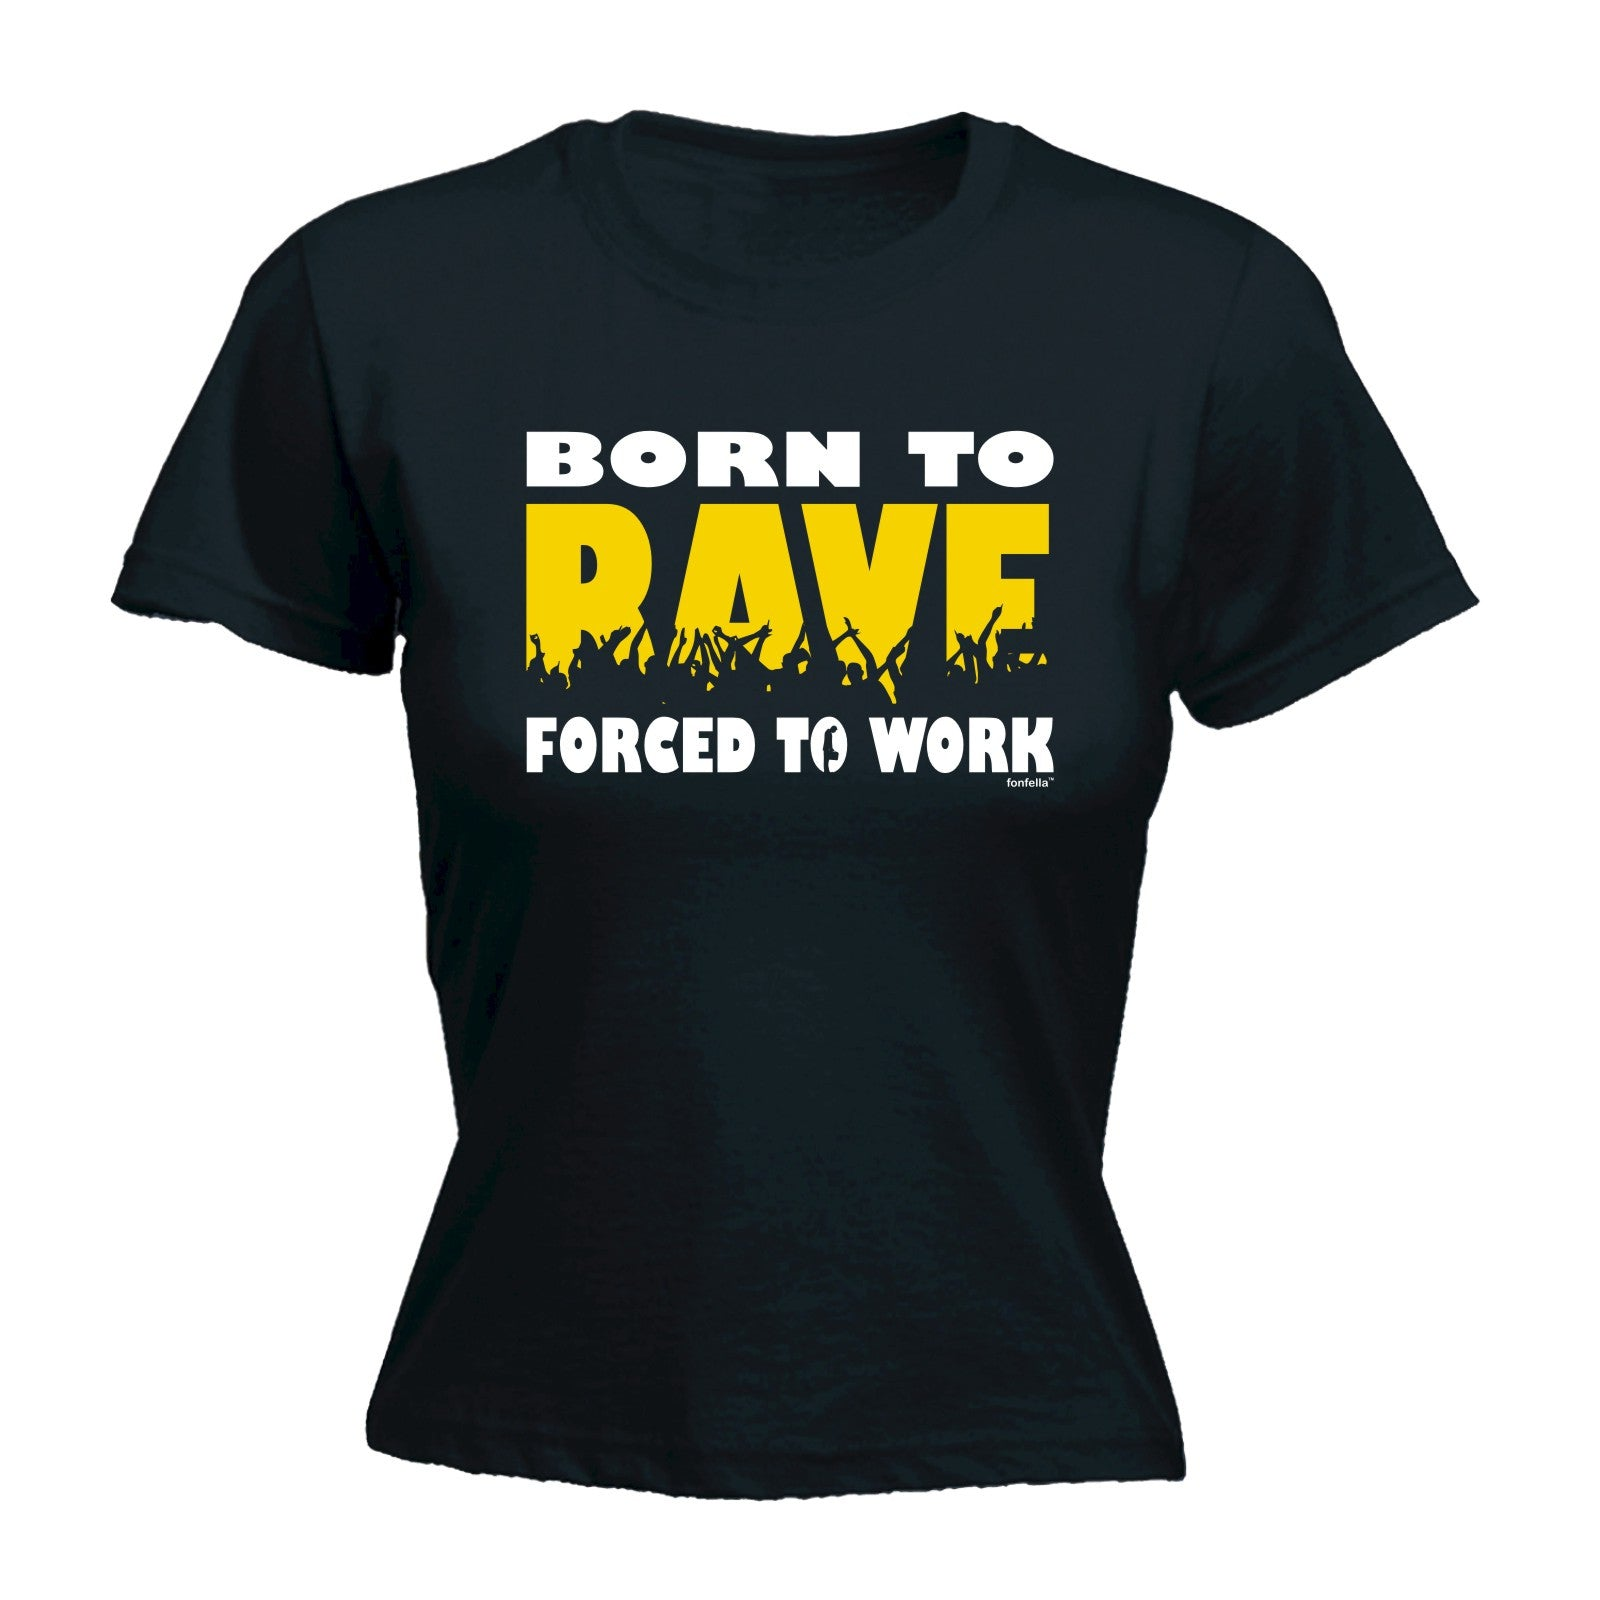 123t Womenu0027s Born To Rave Forced To Work Funny T-Shirt  sc 1 st  123t : dinosaur rave costume  - Germanpascual.Com